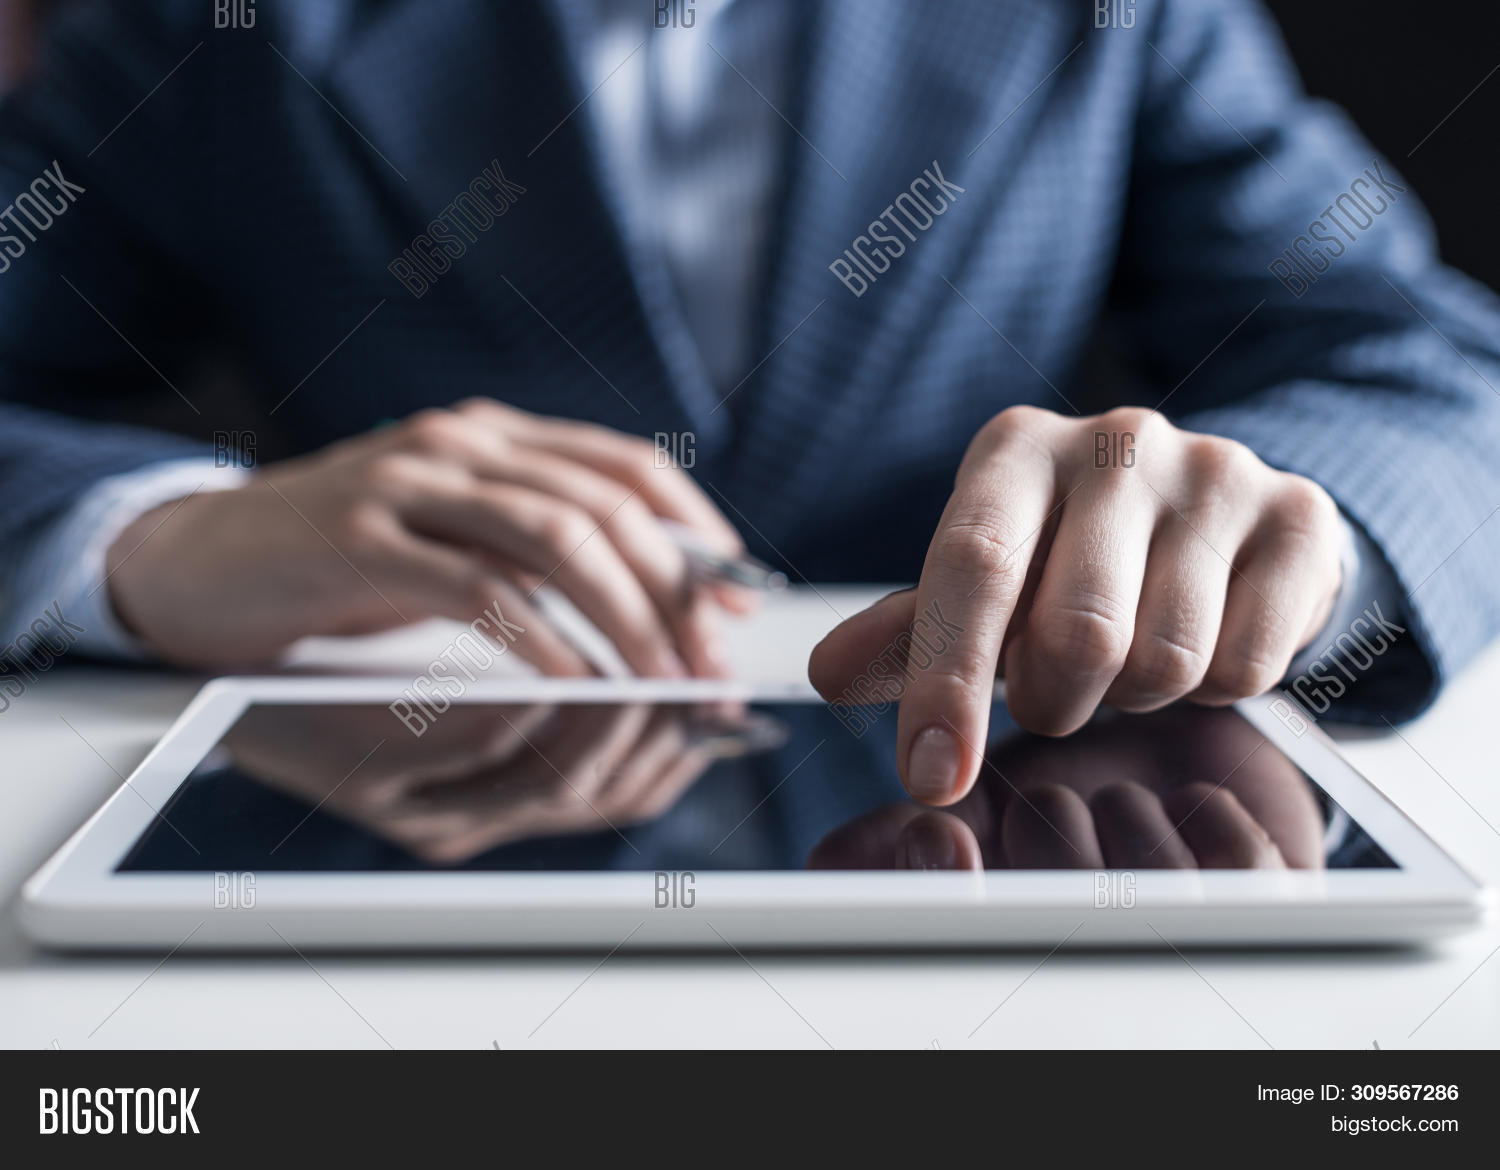 application,business,businessman,close-up,commerce,communication,company,computer,concept,consultant,corporation,desk,digital,display,e-commerce,finger,gadget,hand,high,holding,human,information,innovation,interactive,internet,male,man,management,manager,office,online,pen,pointing,professional,screen,sitting,suit,tablet,tech,technology,touch,touching,touchscreen,worker,working,workplace,workspace